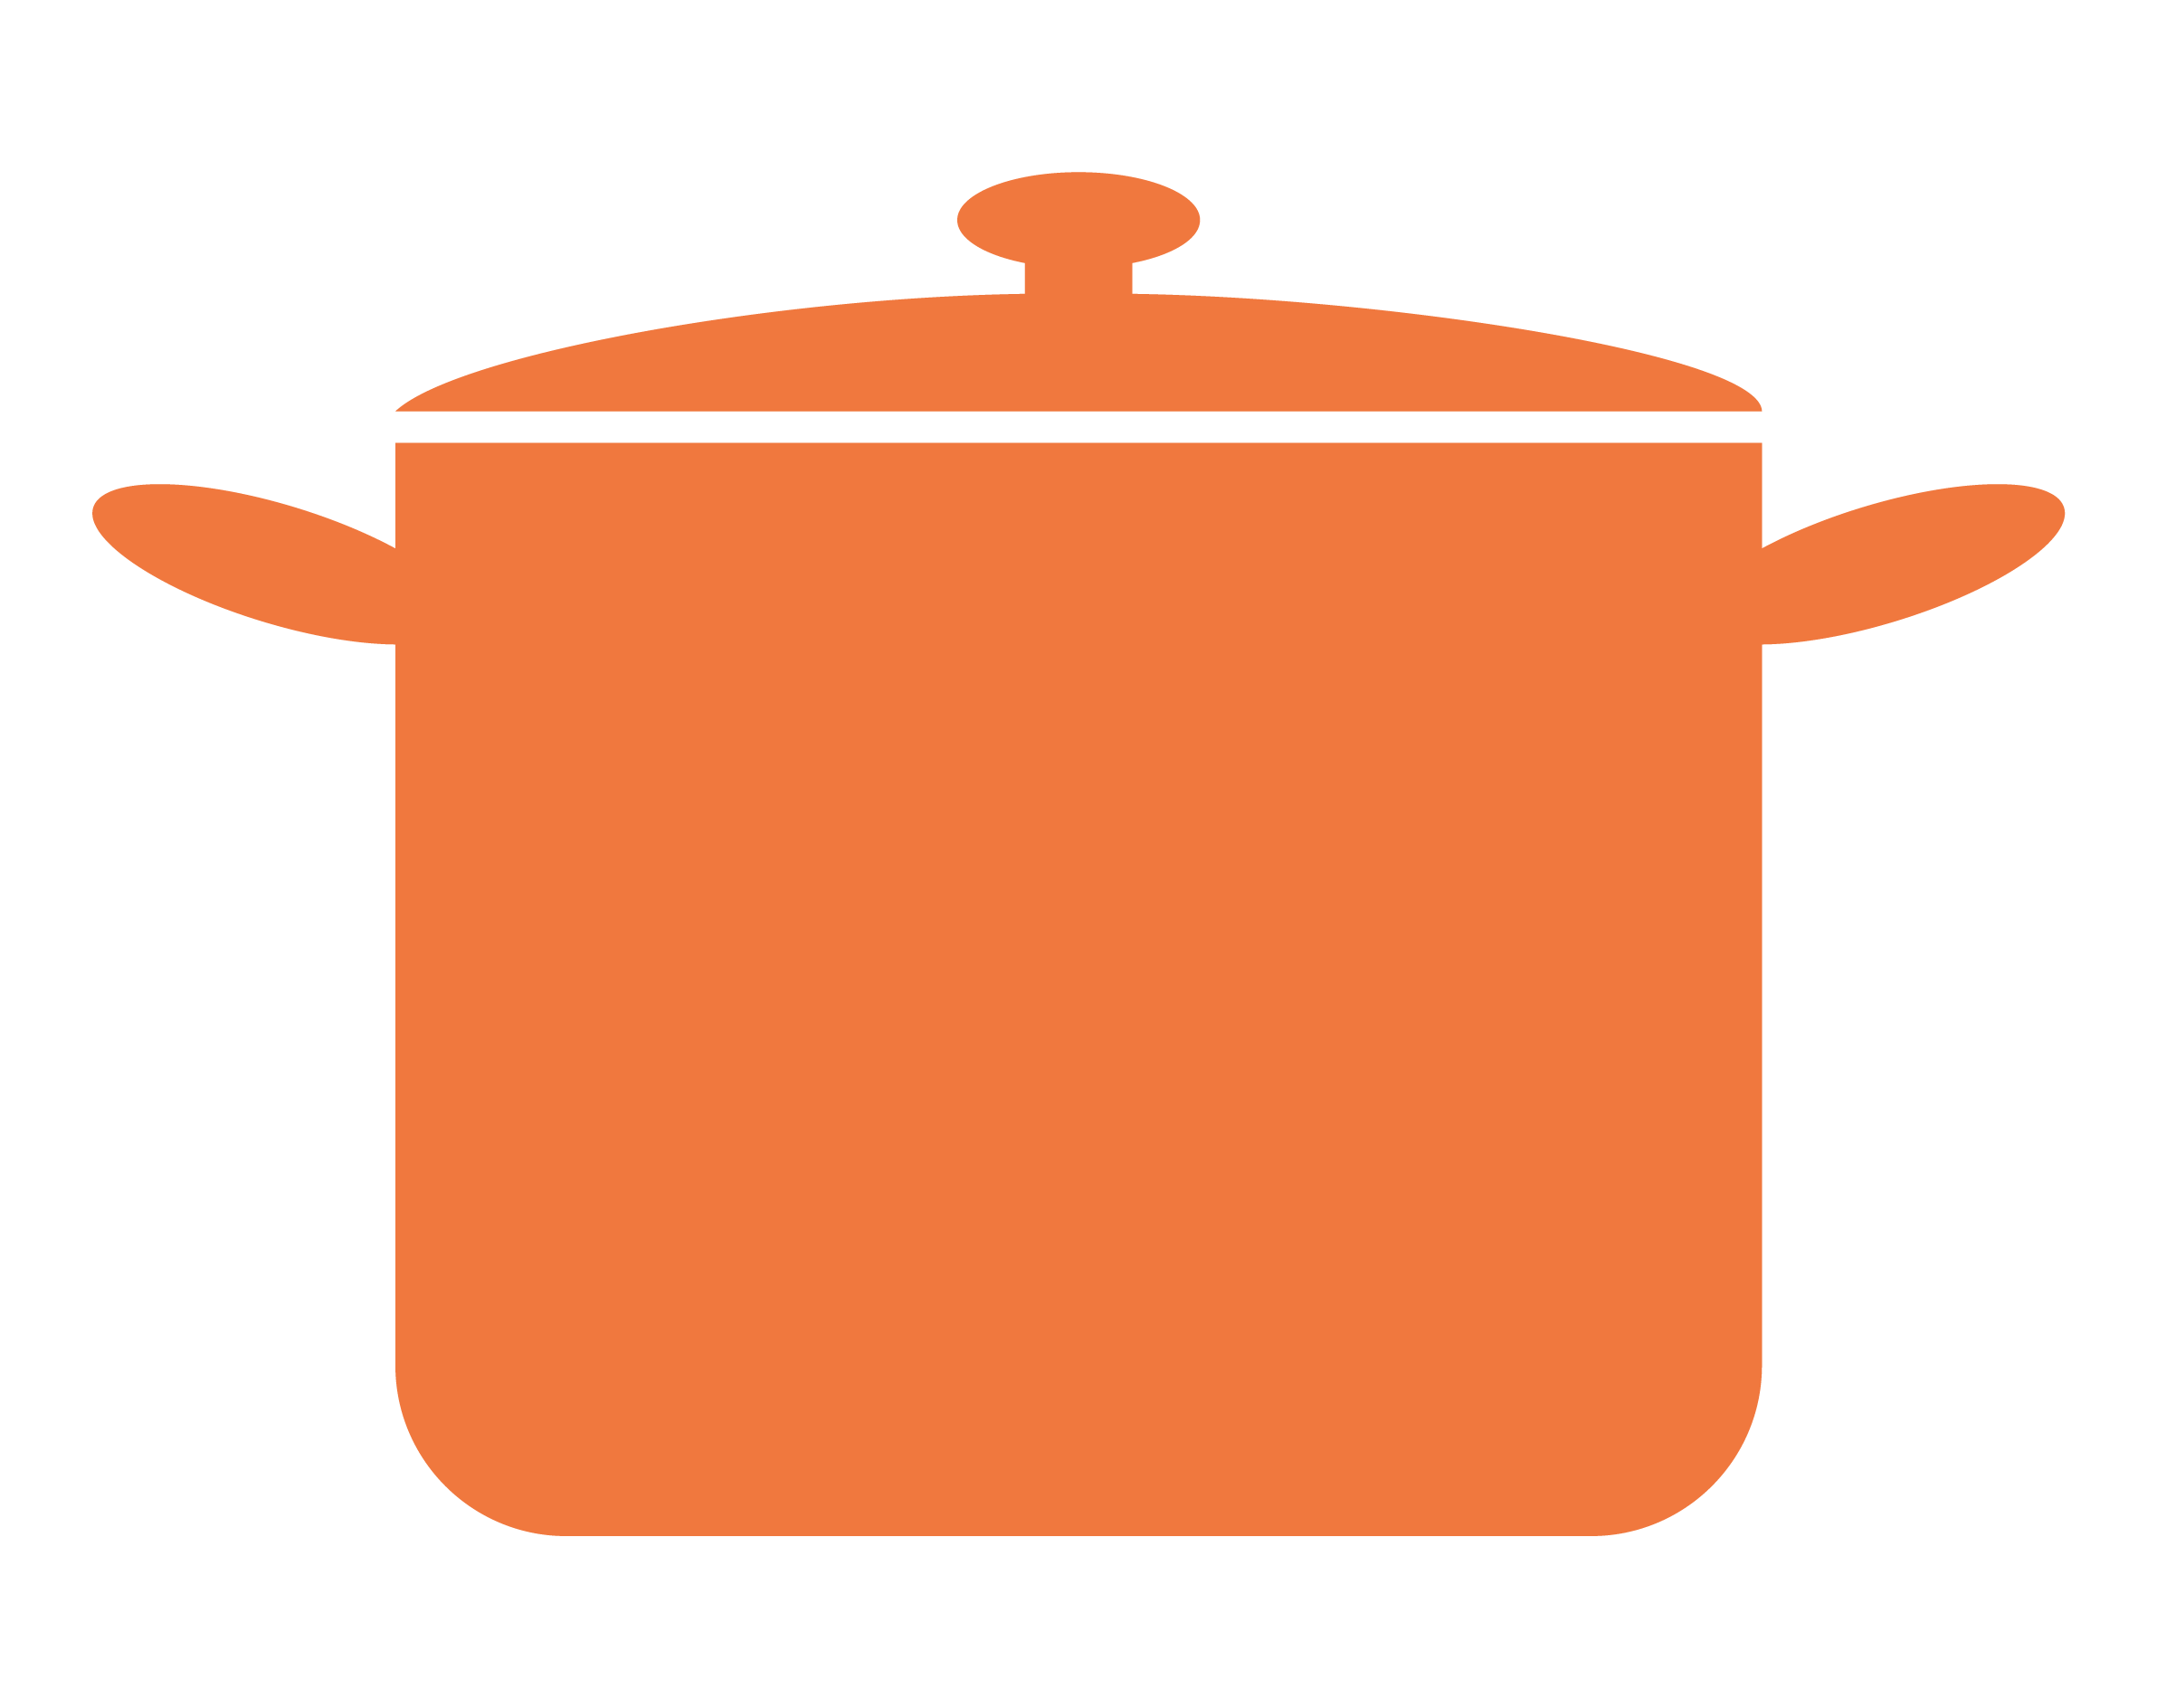 Kitchen tools clipart png.